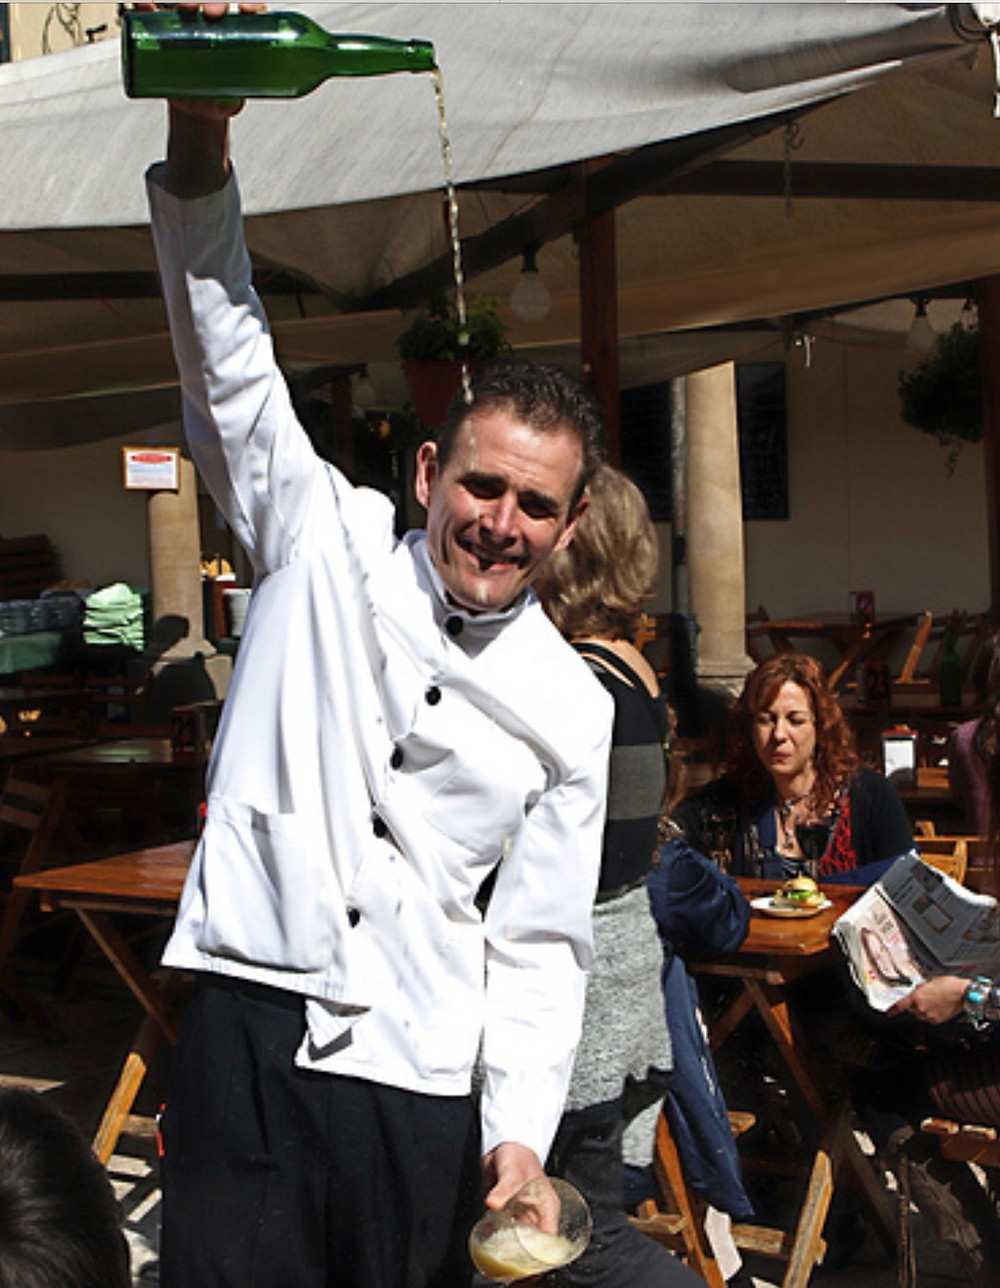 a waiter pouring cider, performance art style,  in Oviedo Spain, the capital of Asturias